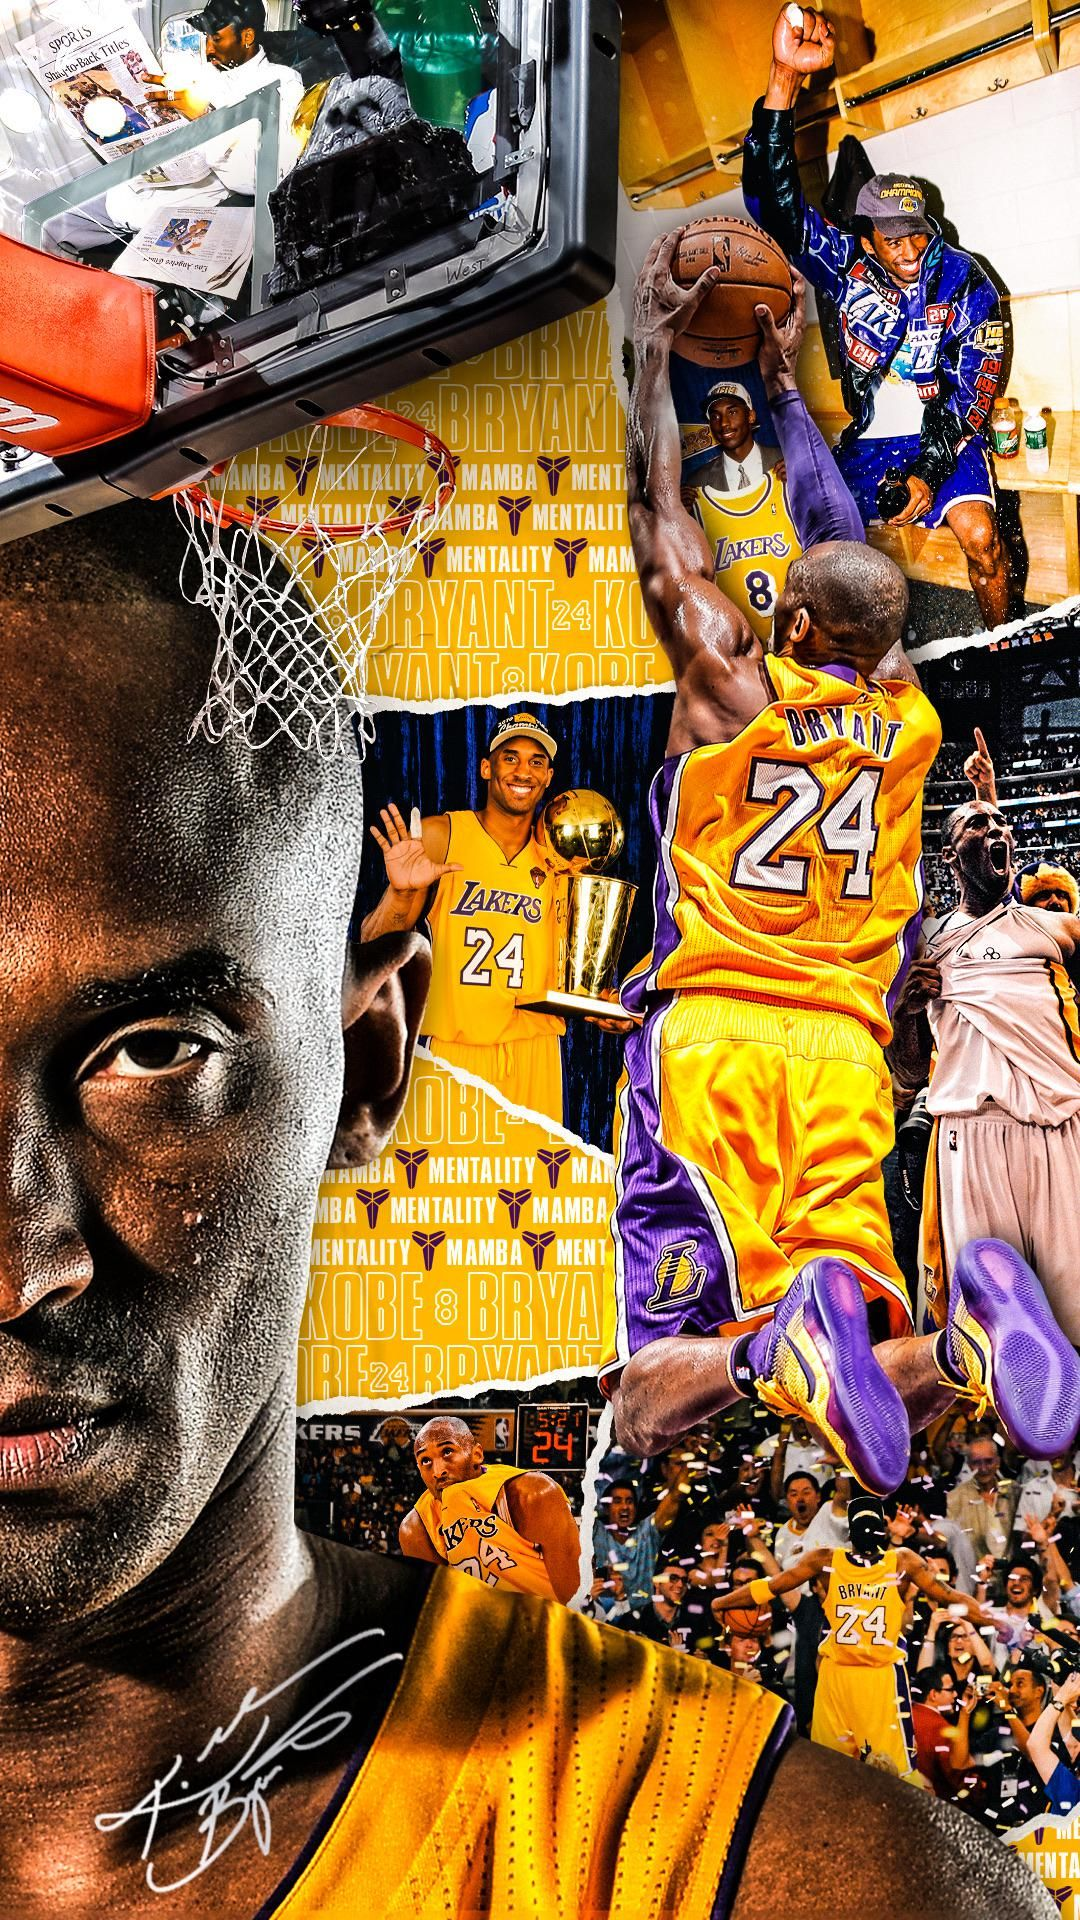 Kobe Bryant Wallpaper For Mobile Phone Tablet Desktop Computer And Other Devices Hd And 4k Wall Kobe Bryant Wallpaper Kobe Bryant Poster Kobe Bryant Pictures Kobe and lebron lakers wallpaper iphone